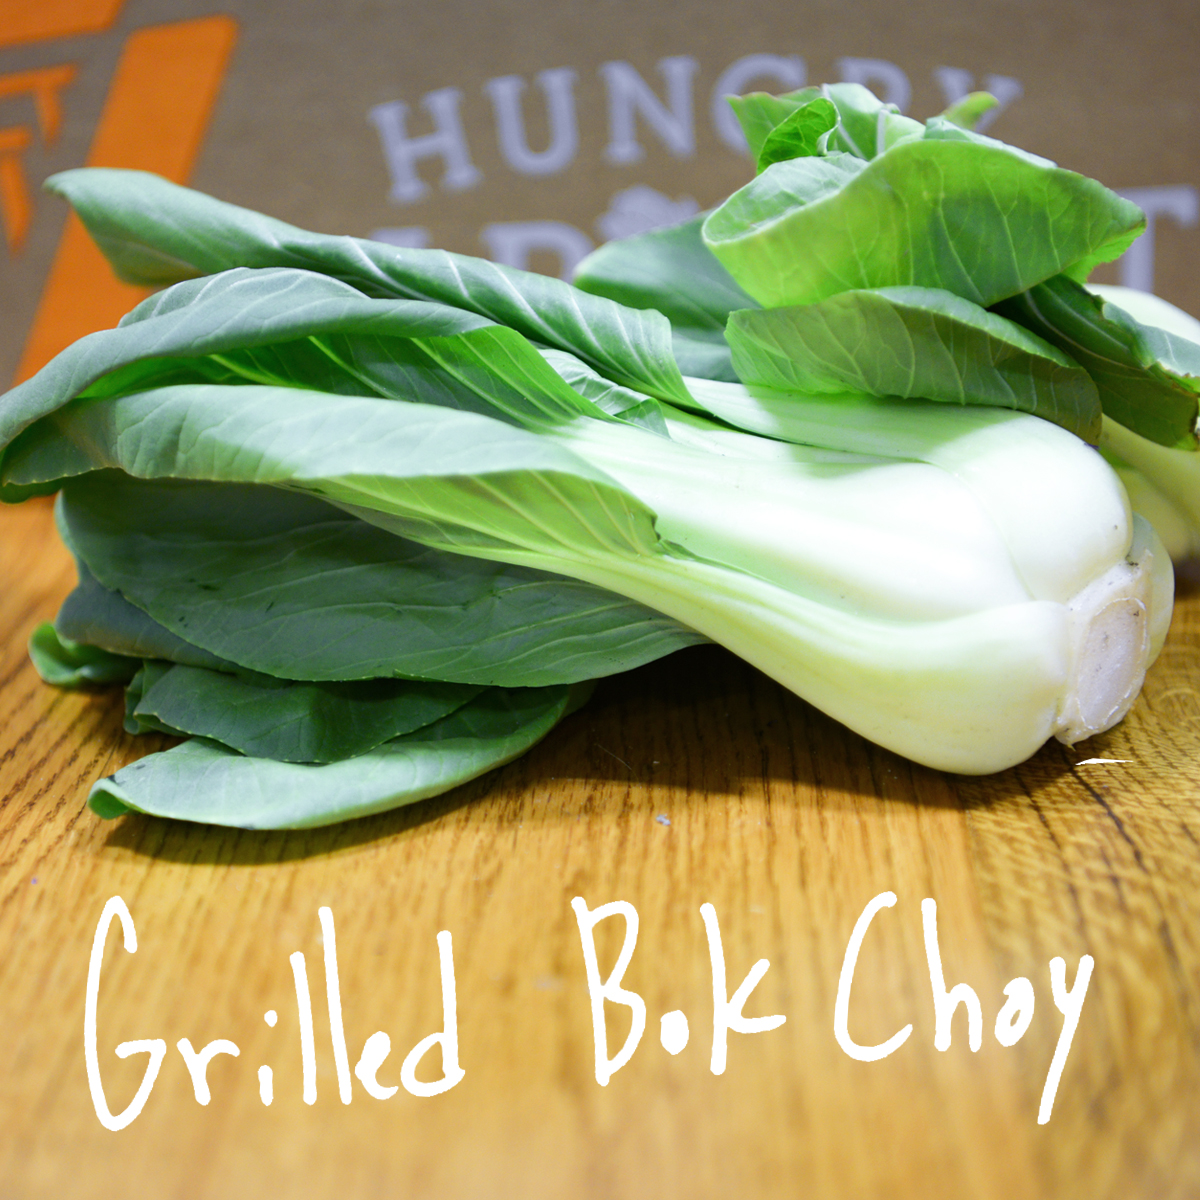 Who says it's too cold to grill? We love this different take on how to cook bok choy. - Find the recipe at: Dishing Up The Dirt